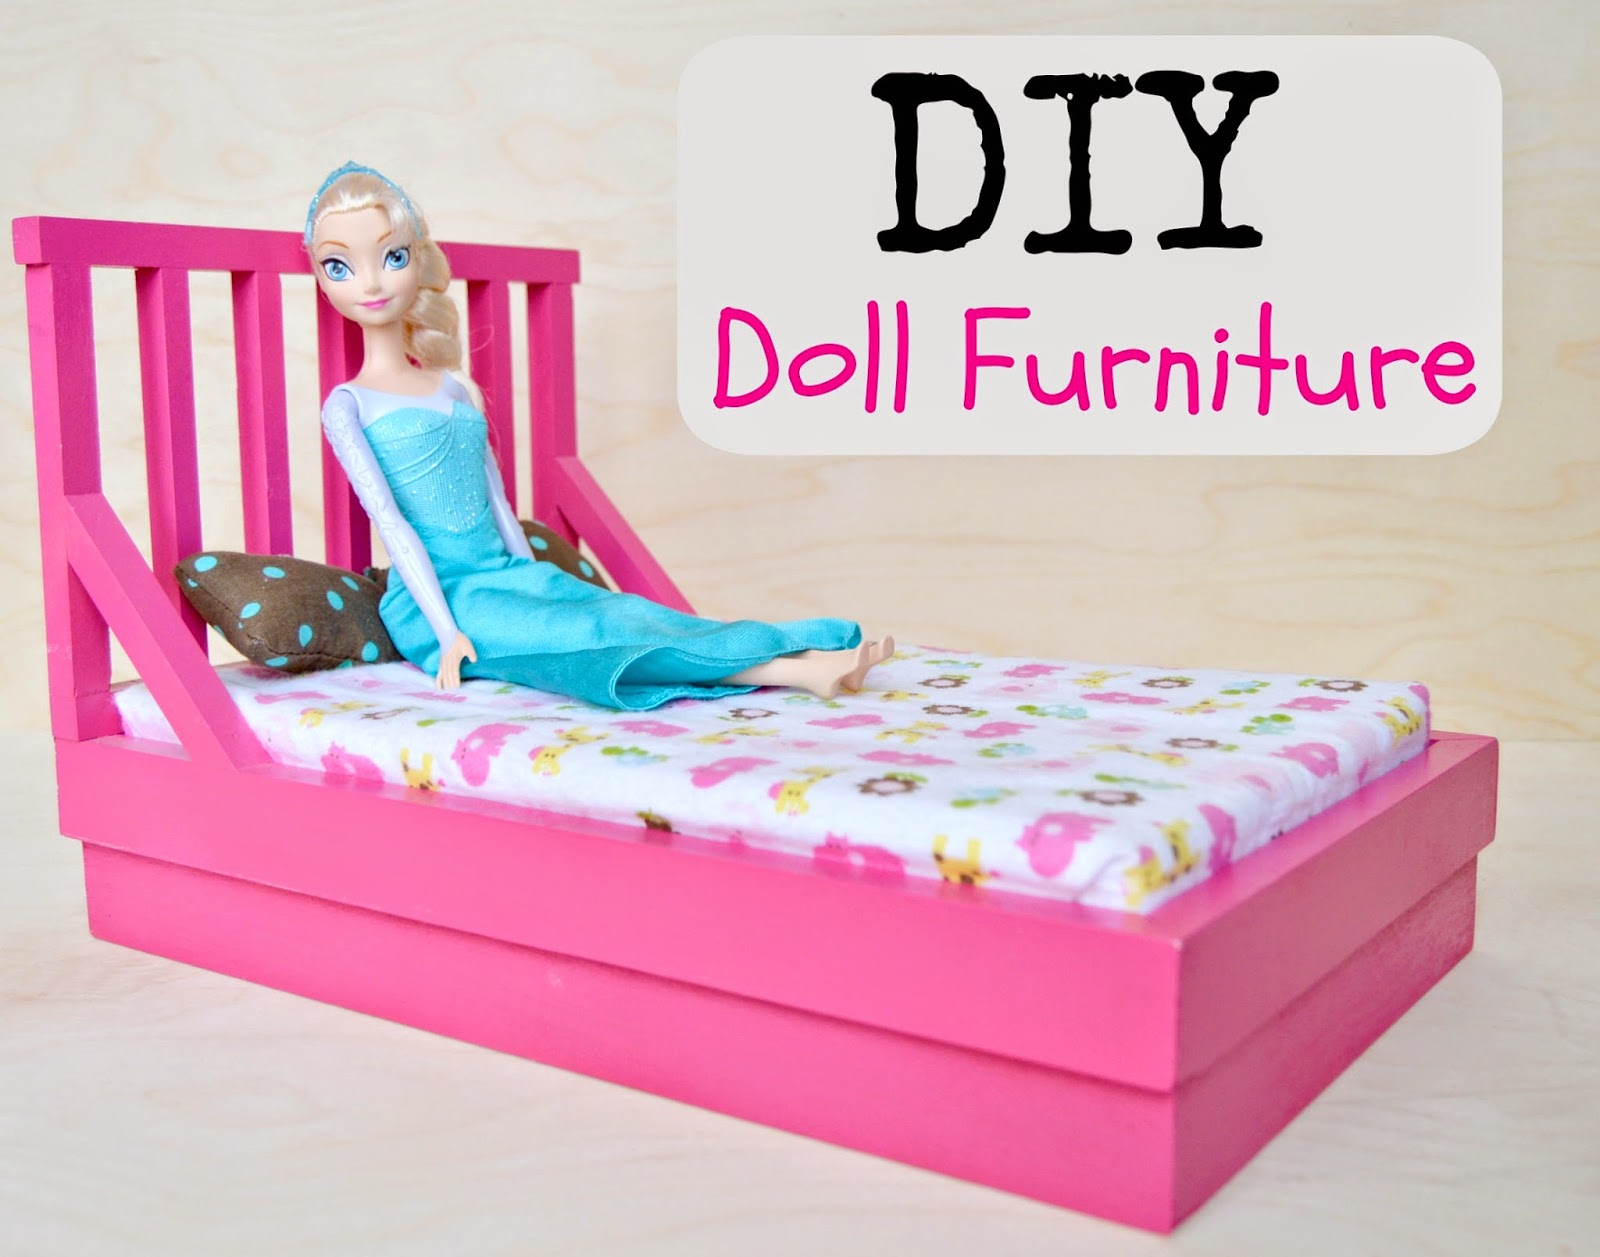 Barbie furniture patterns Modern Diy Dollhouse Furniture Kruses Workshop Kruses Workshop Diy Dollhouse Furniture